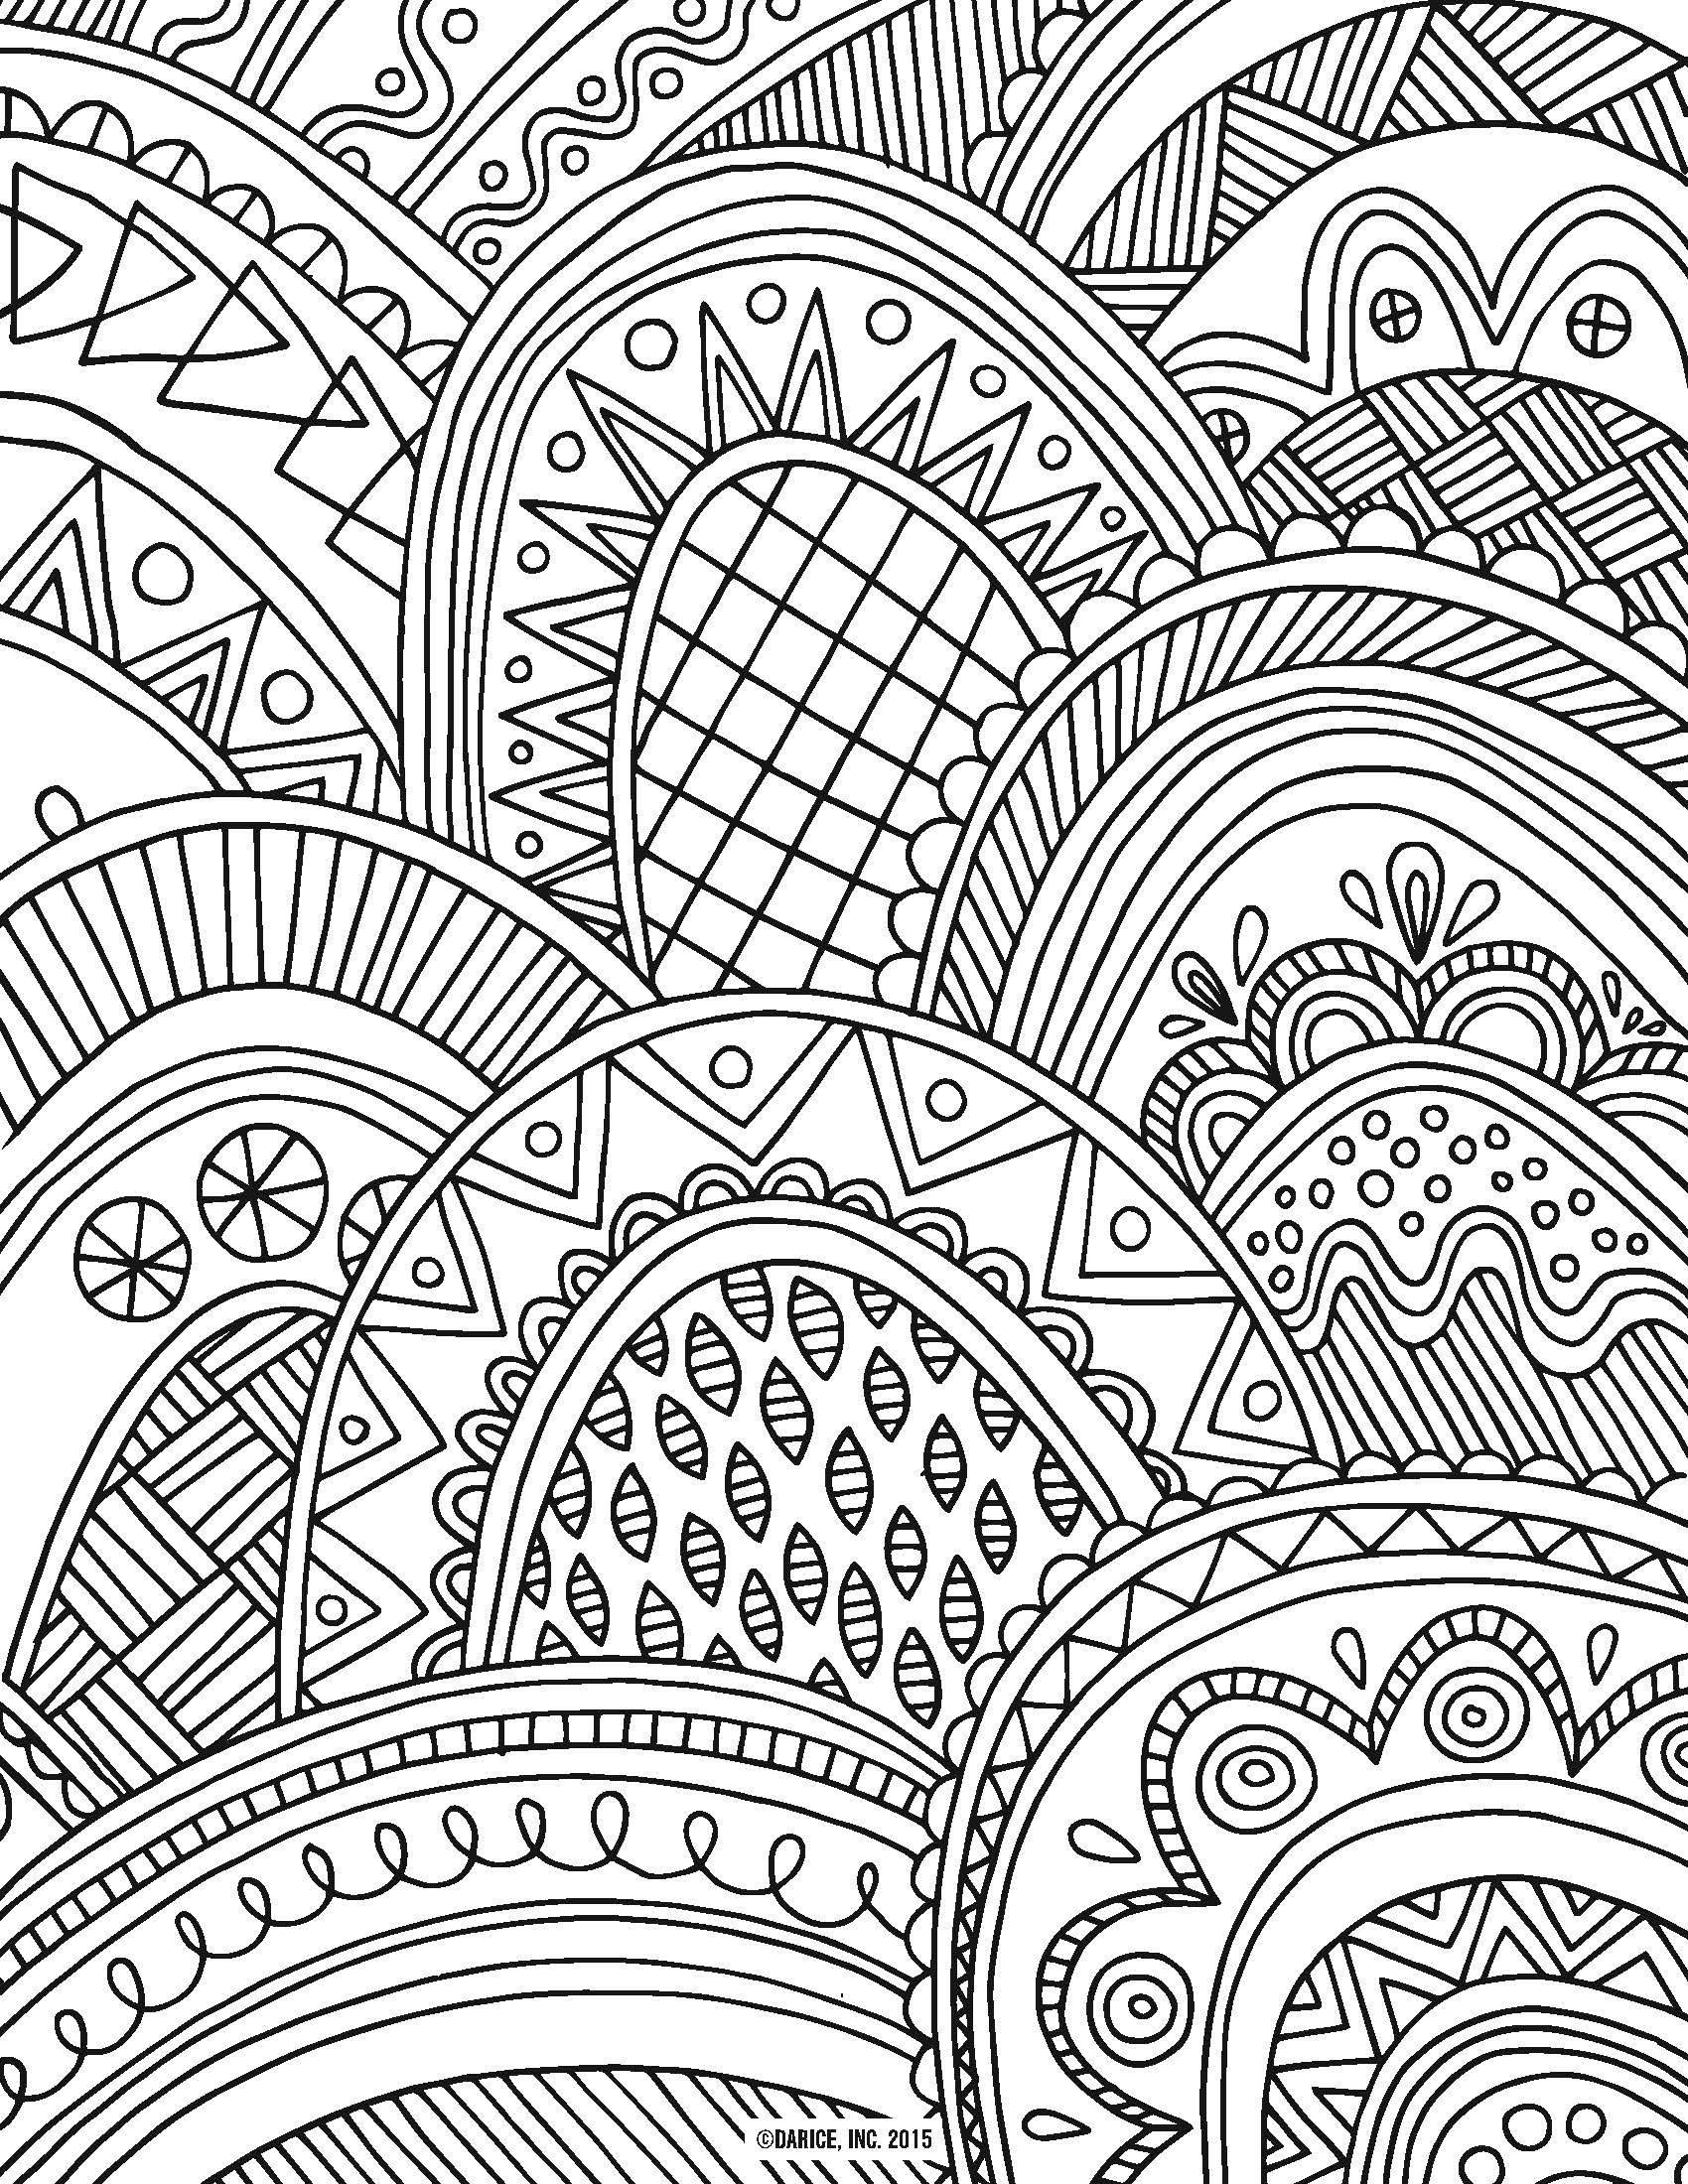 free coloring pages for kids 40 top free coloring pages we need fun kids coloring free pages for